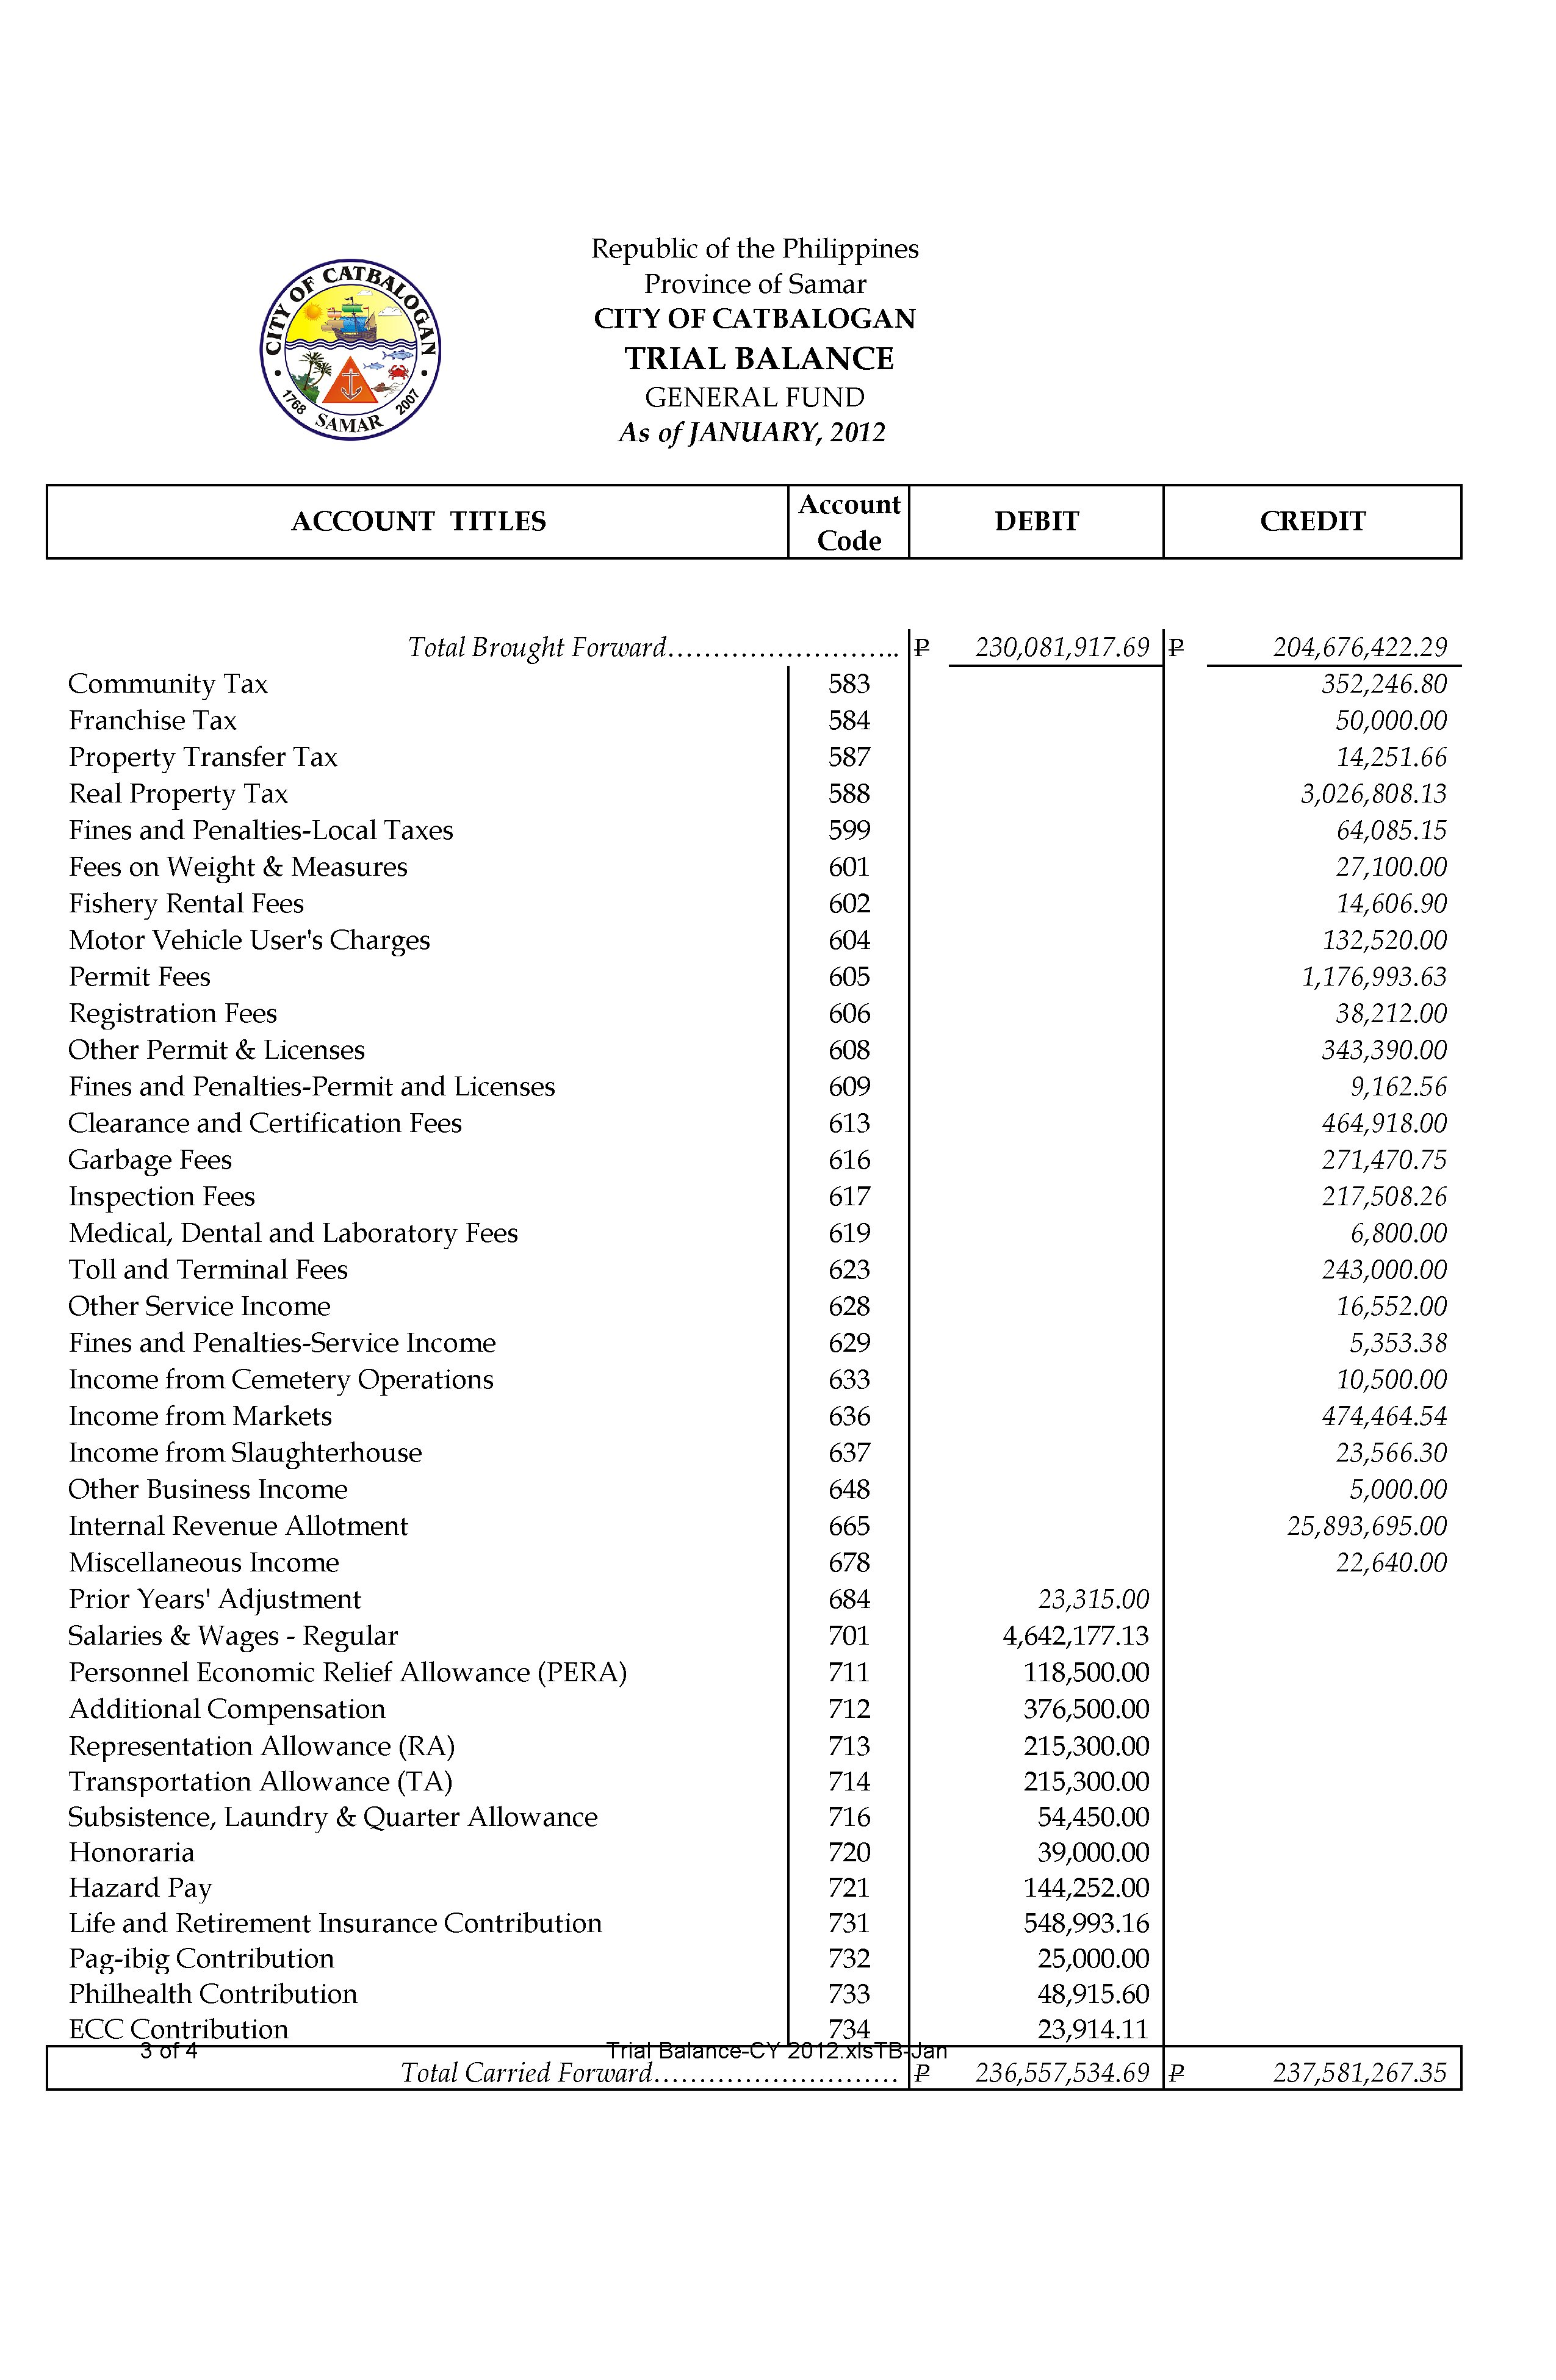 Trial Balance For Form 3